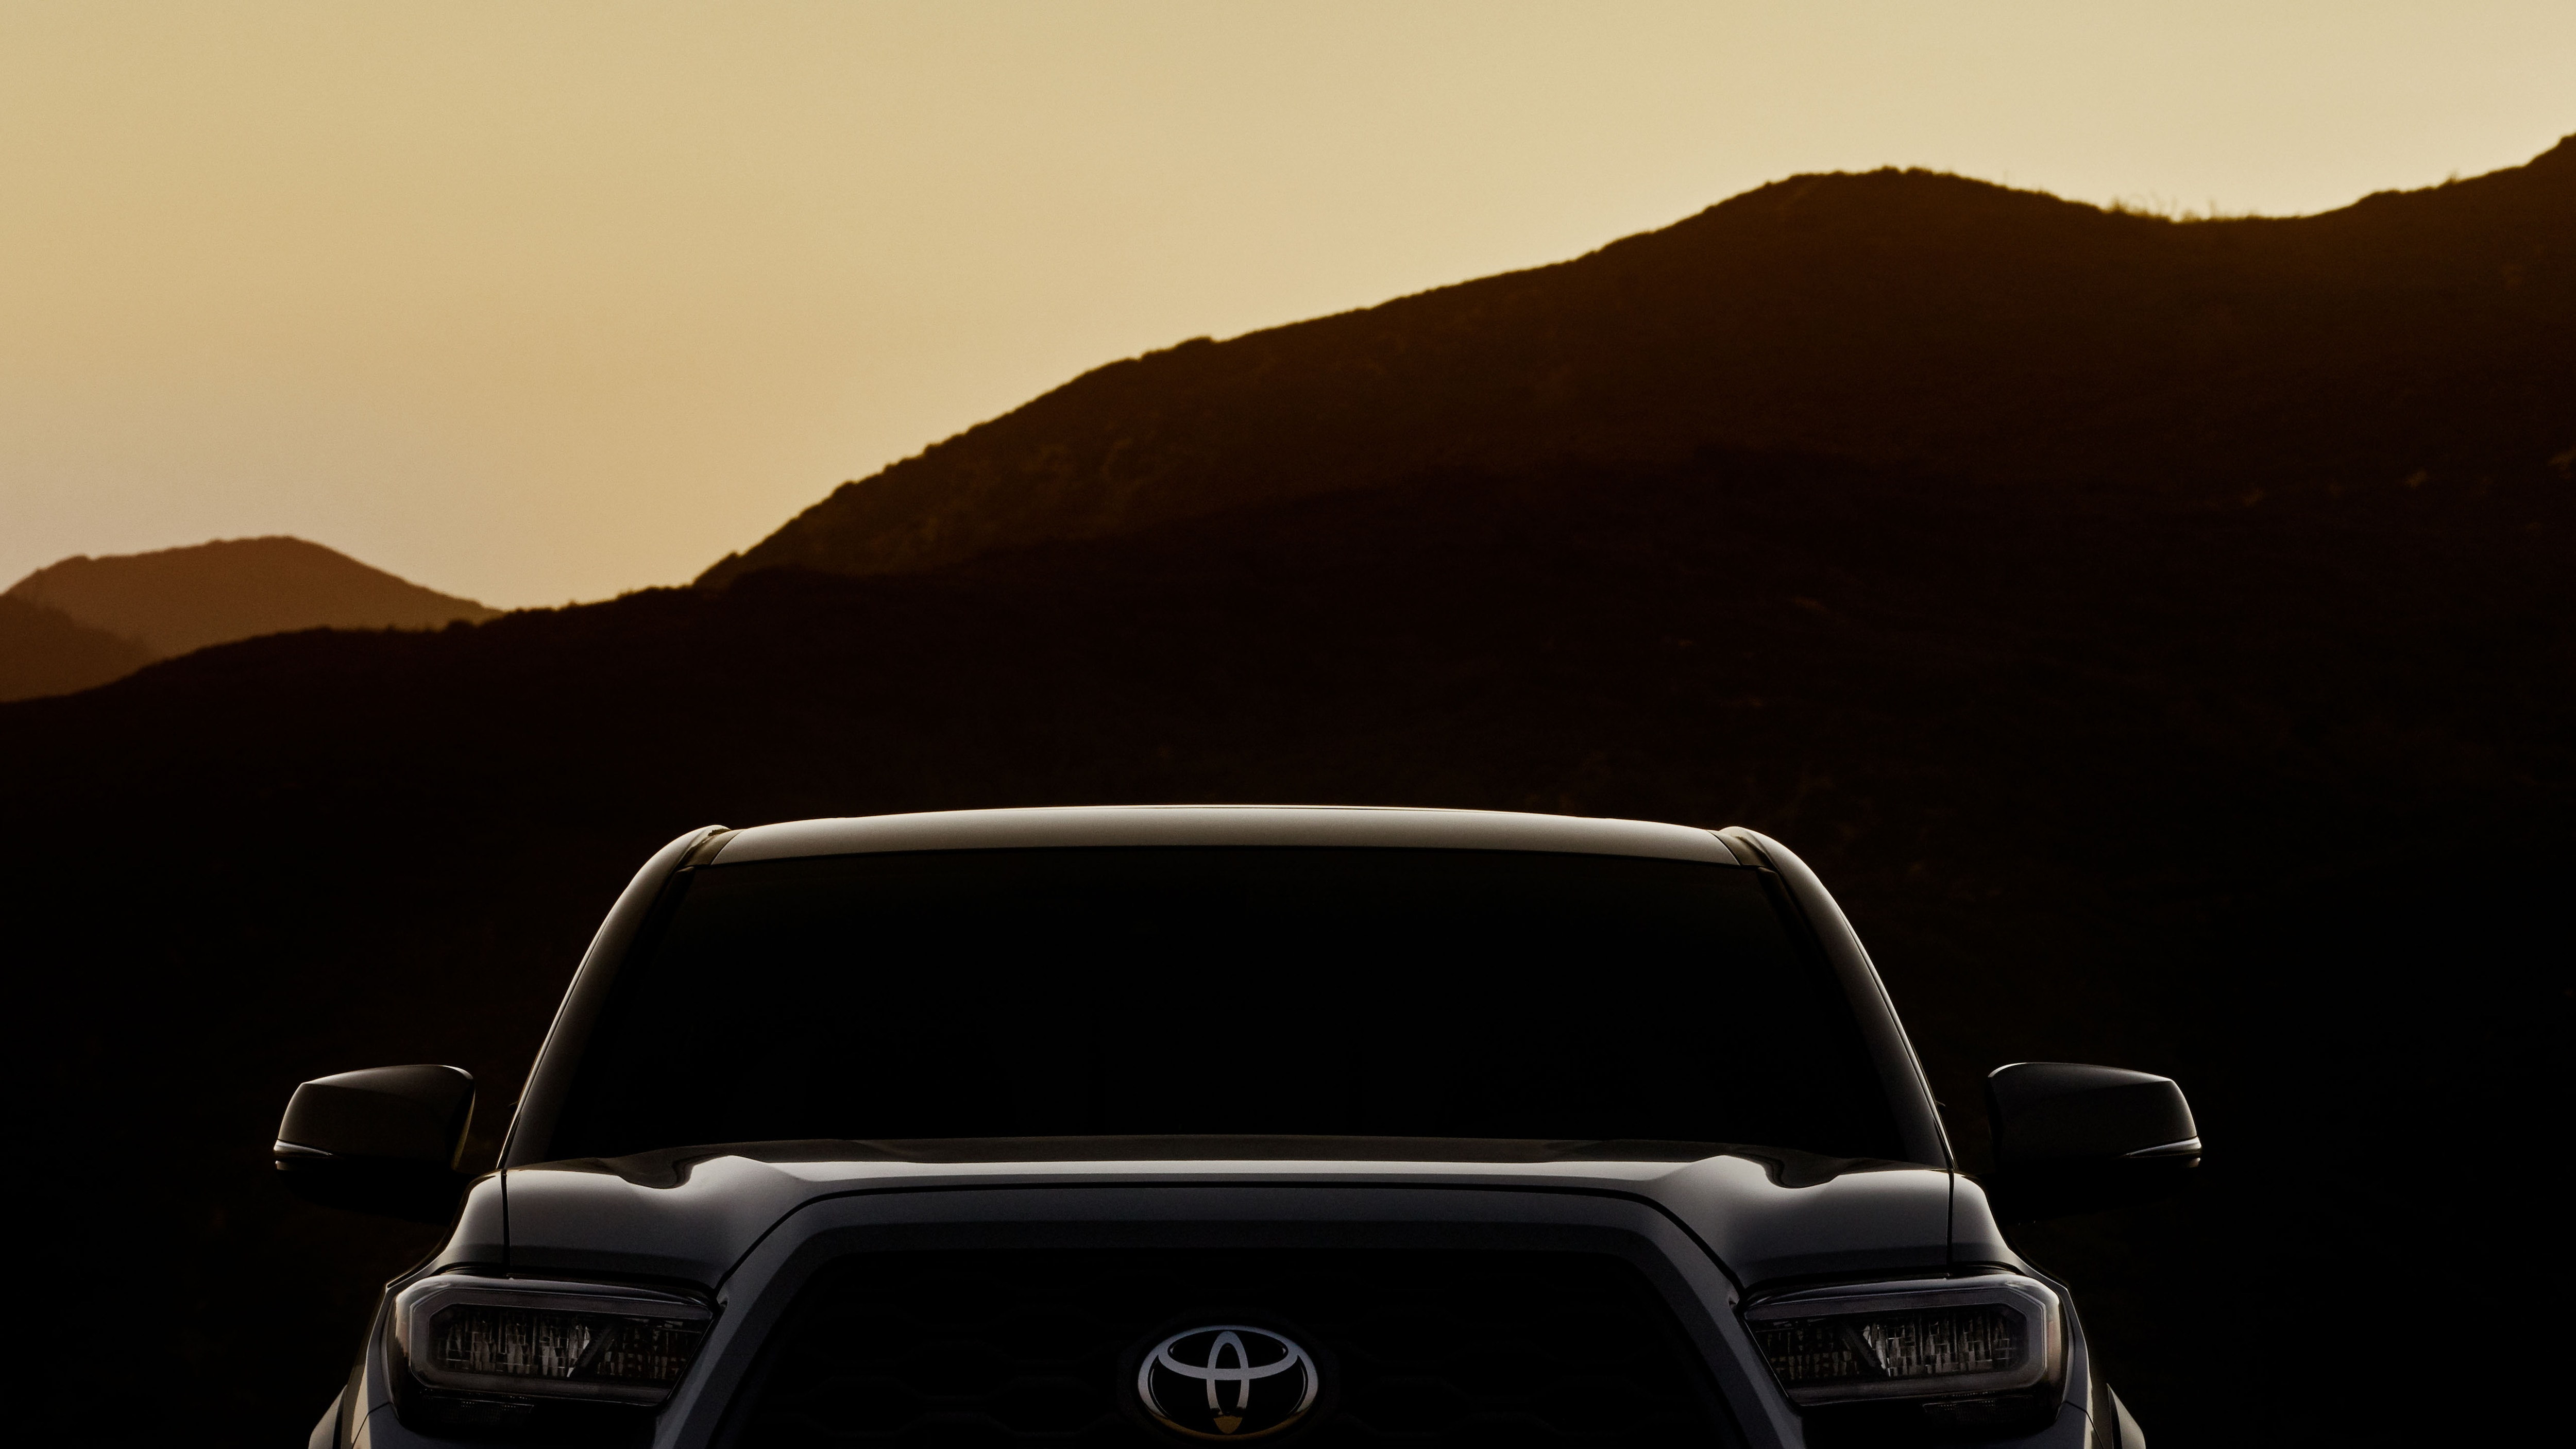 2020 Toyota Tacoma Grille Teaser